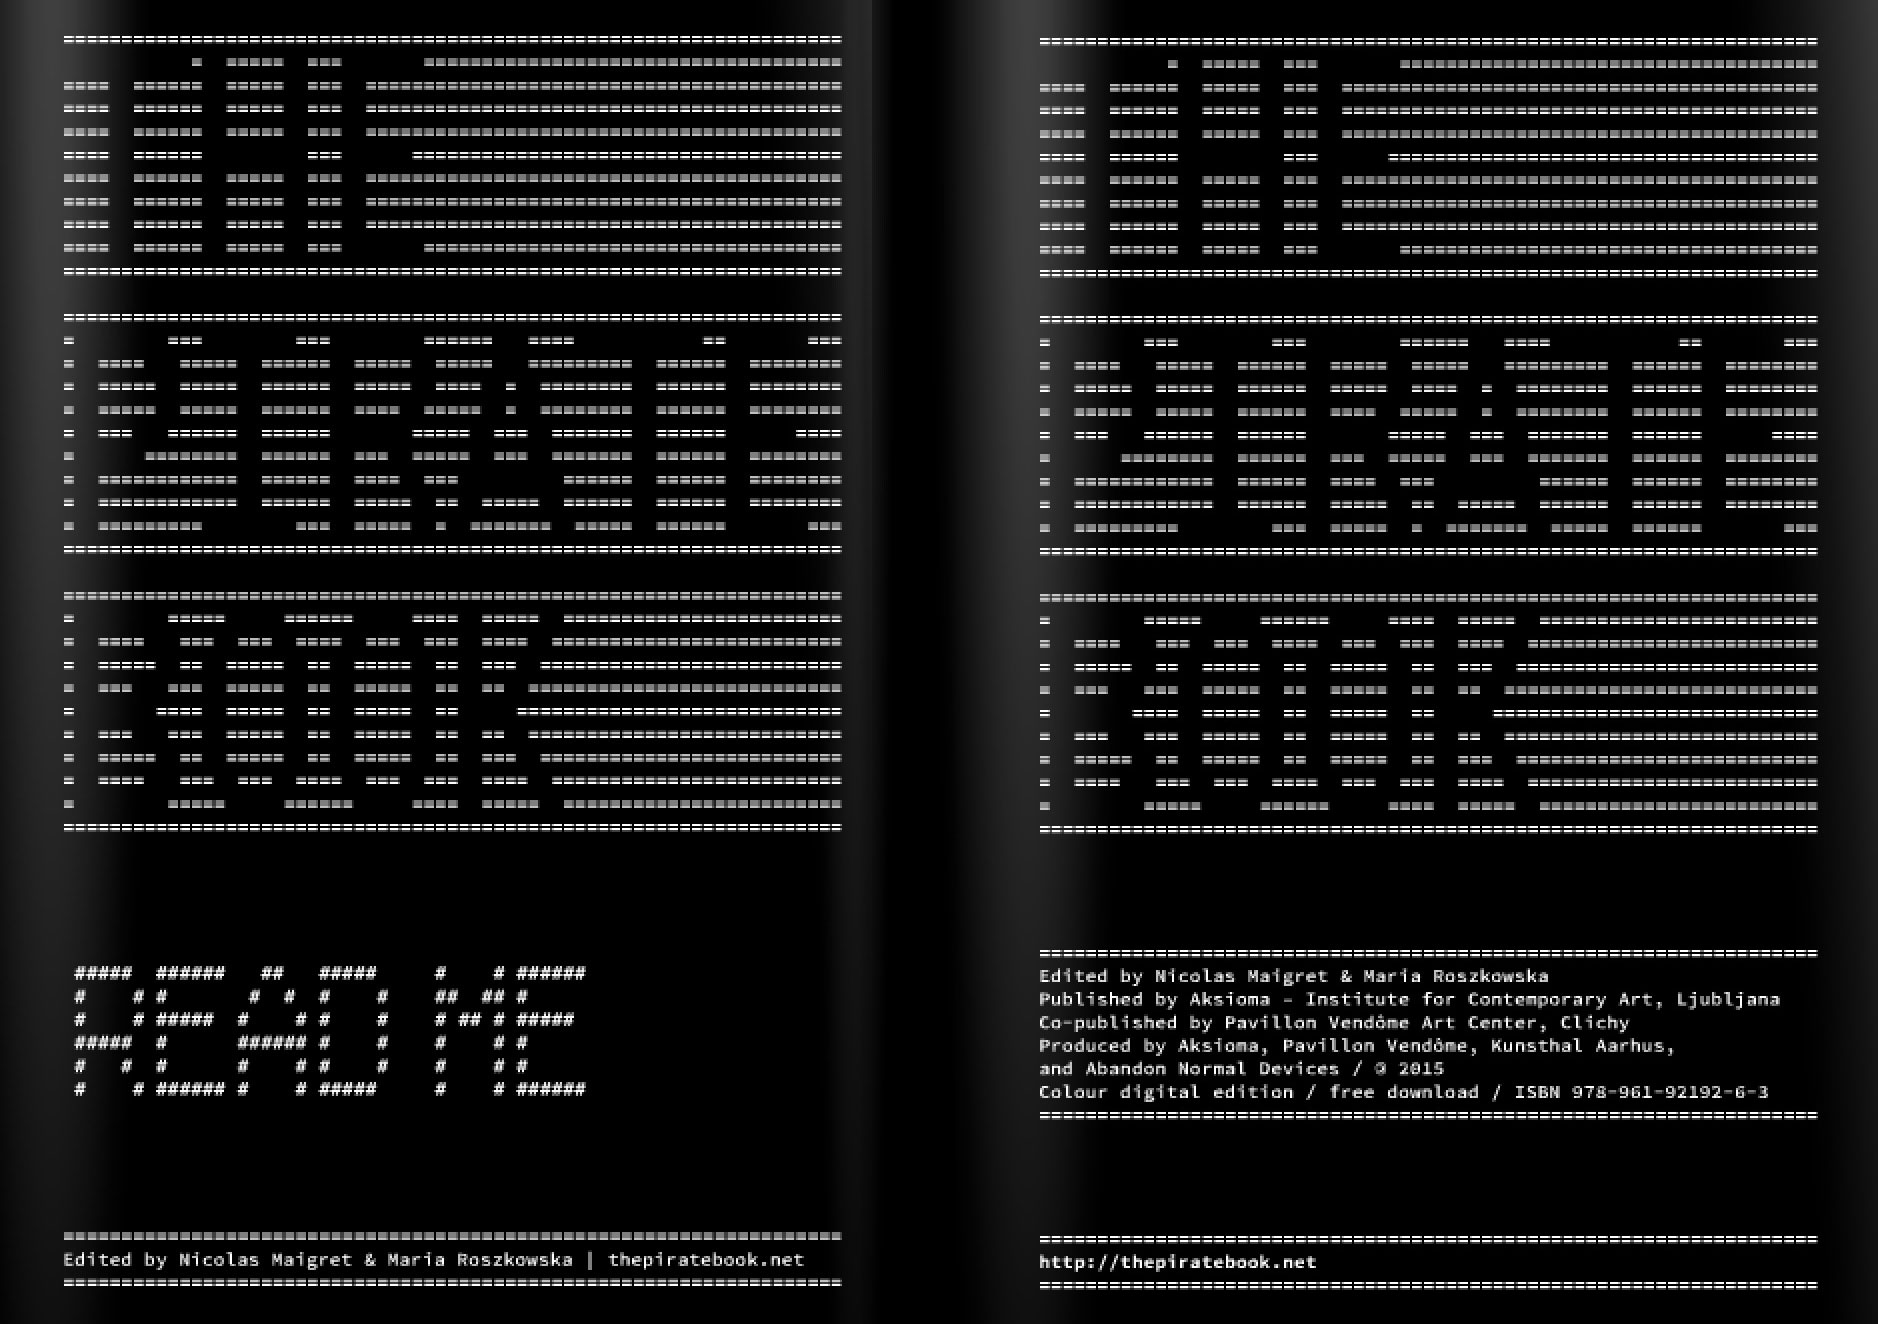 Book Cover Design Free Download Software ~ The pirate book u the pirate book u a compilation of stories about